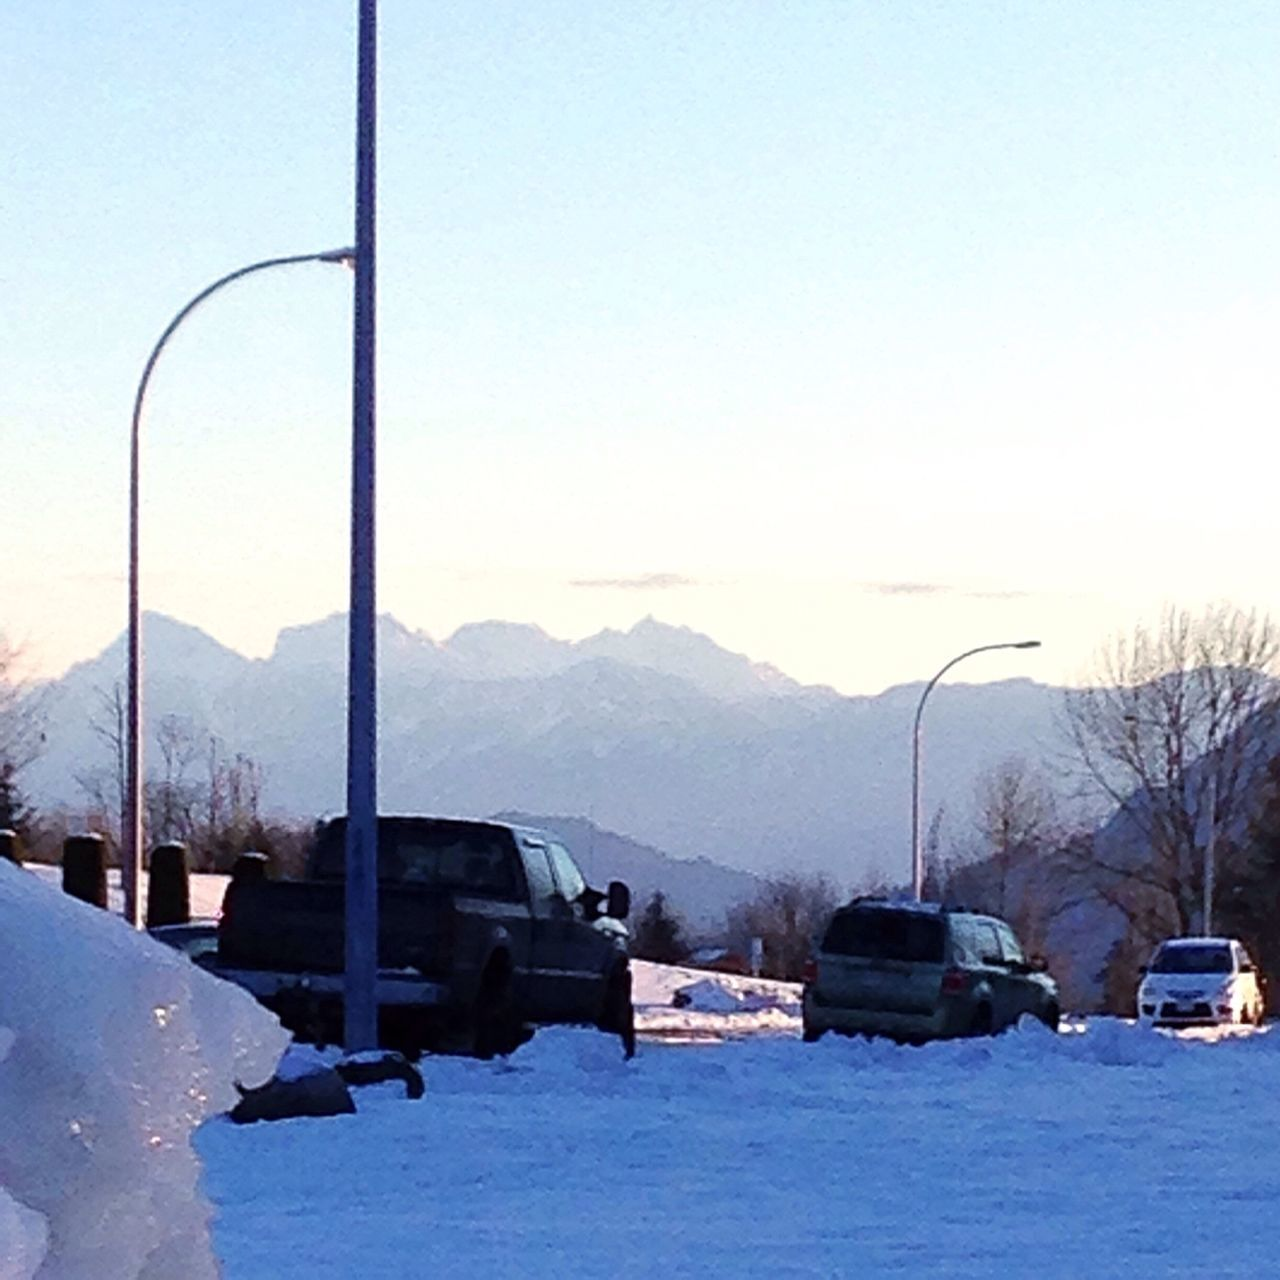 snow, cold temperature, winter, mountain, transportation, car, nature, outdoors, beauty in nature, day, land vehicle, scenics, mountain range, clear sky, tranquility, no people, sky, landscape, tree